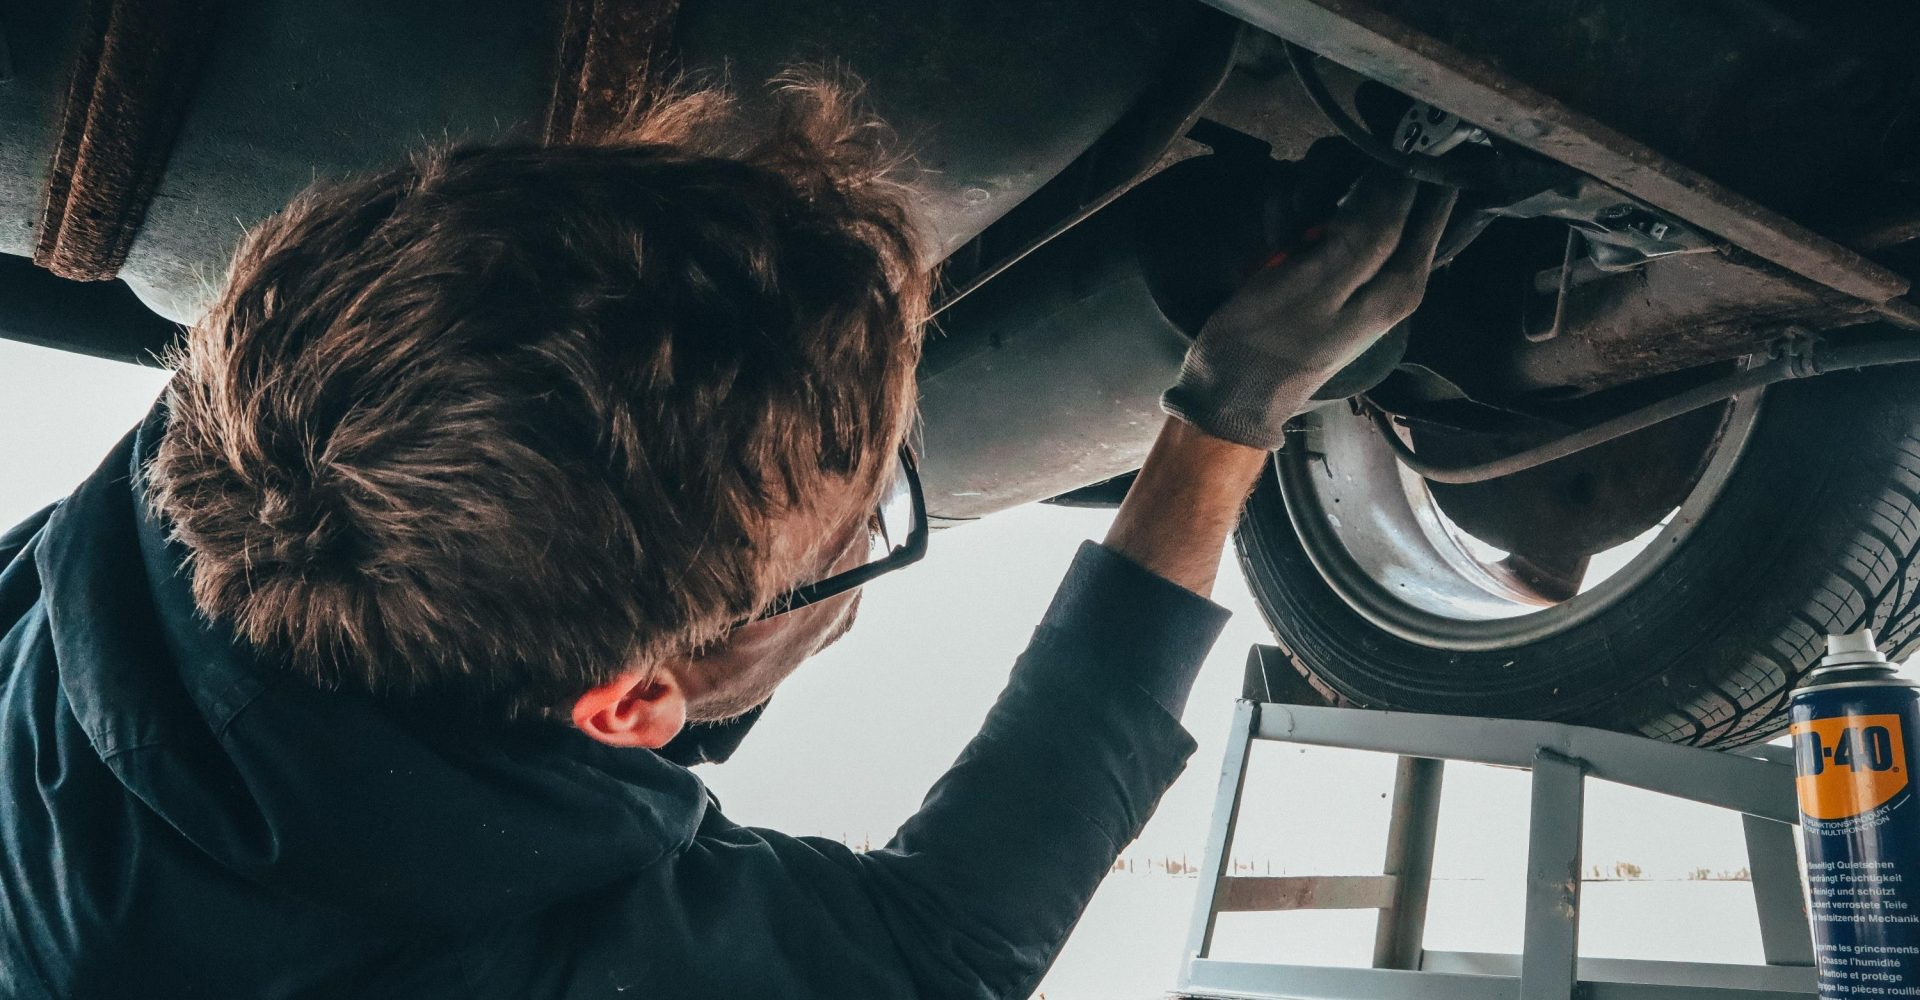 Mandatory MOT tests to recommence on August 1: Here's what to check beforehand